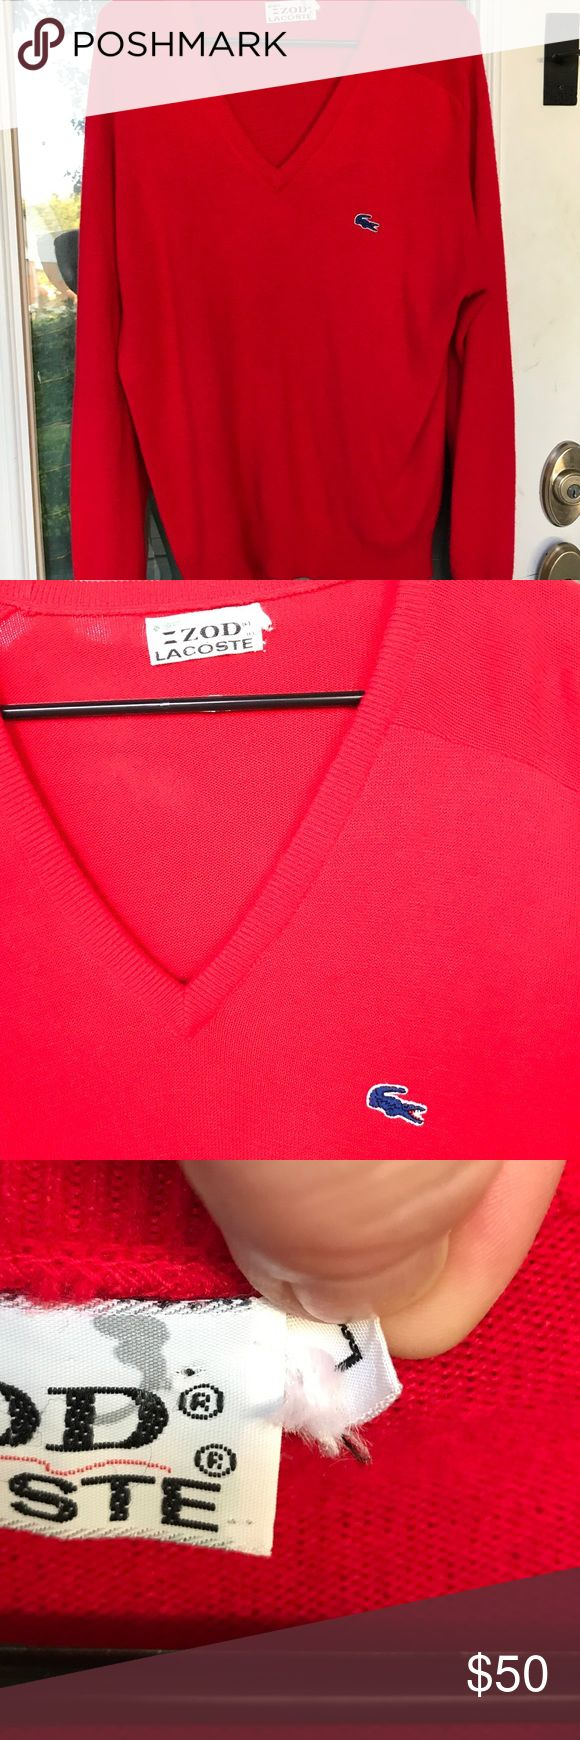 Vintage Izod Lacoste Sweater The best!! When they were still teamed up that is. Maybe a lil piling but not anywhere near unwearable or unmanageable. If I cannot achieve the sale price I list, its mine and I am going to rock this sweater!!! It will be big on me, but I will roll up the sleeves and add an under shirt with a funky cool mini scarf!! Lacoste Sweaters V-Necks